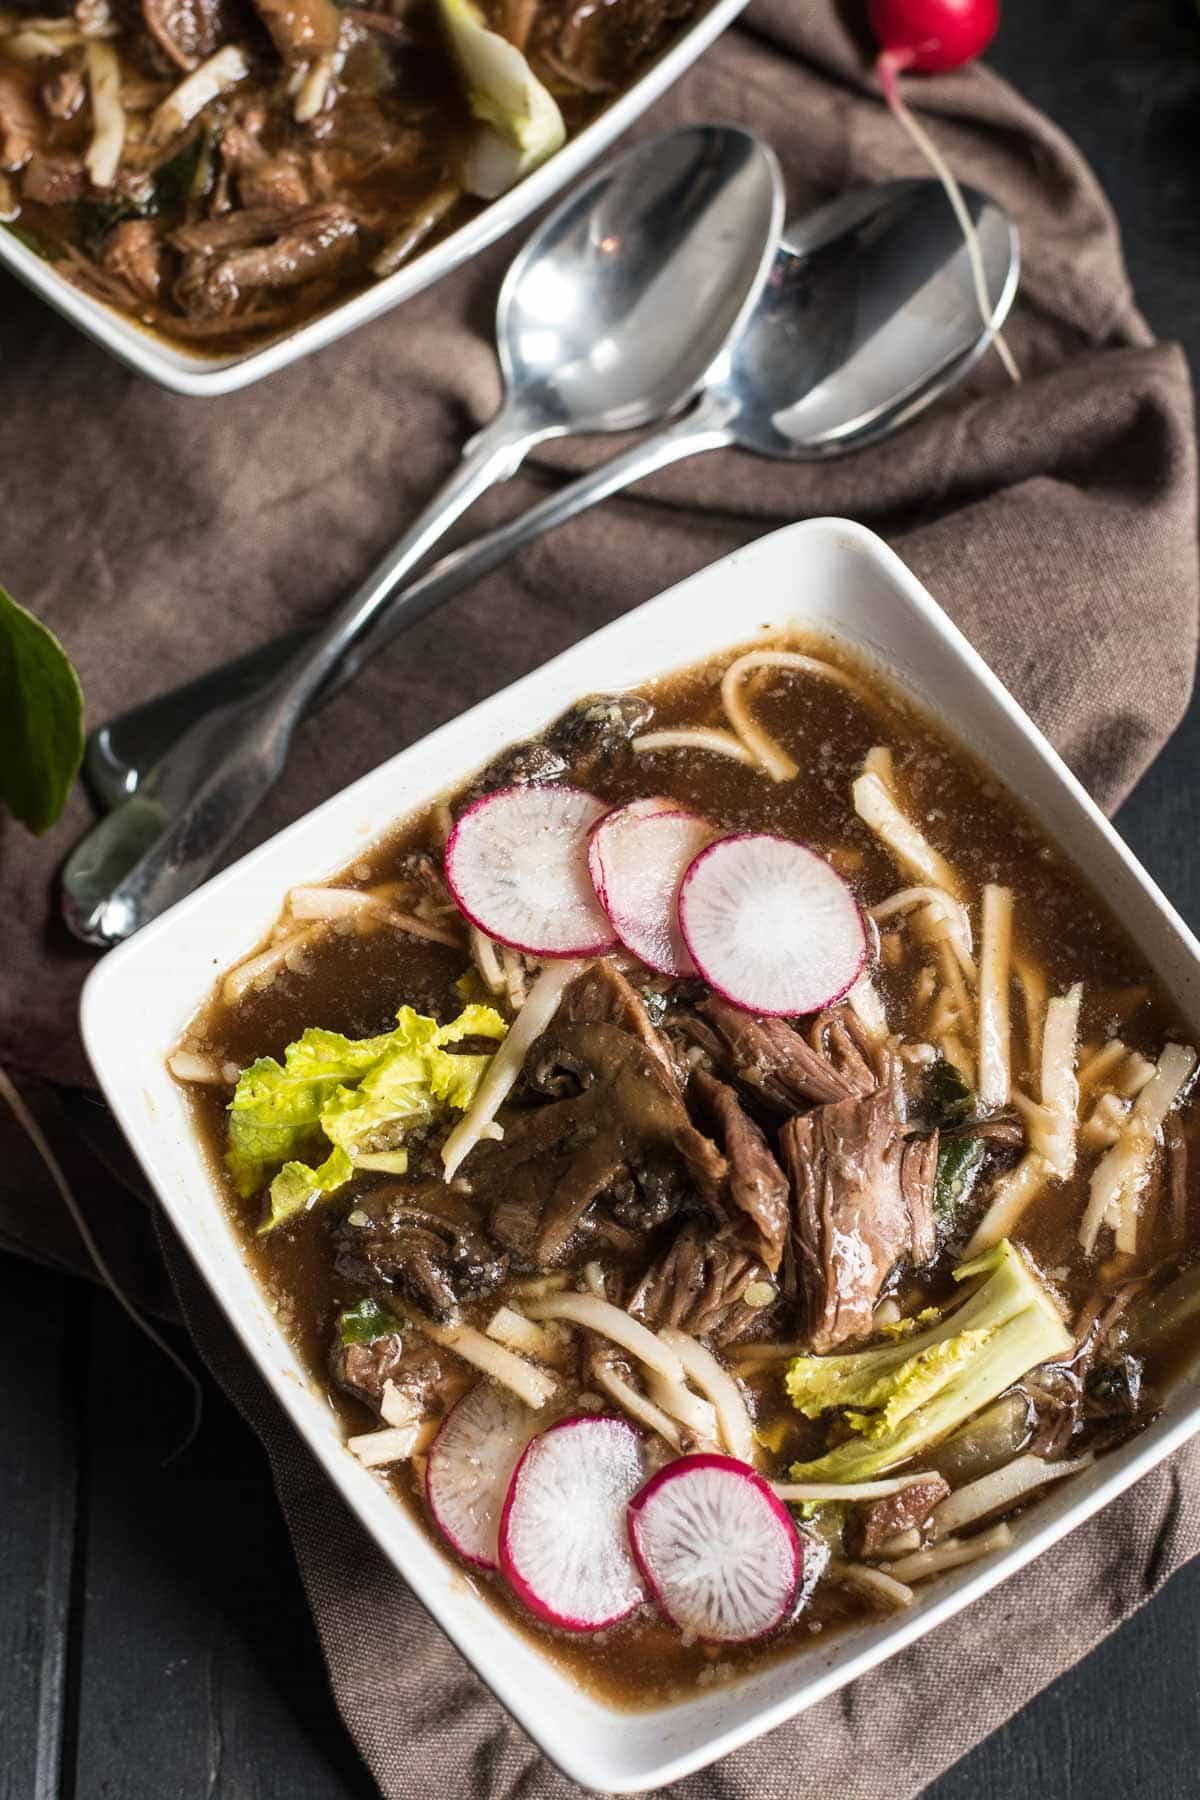 This Slow Cooker Asian Beef and Mushroom Soup recipe is loaded with garlic, ginger, and Sriracha for a warm and comforting weeknight meal.